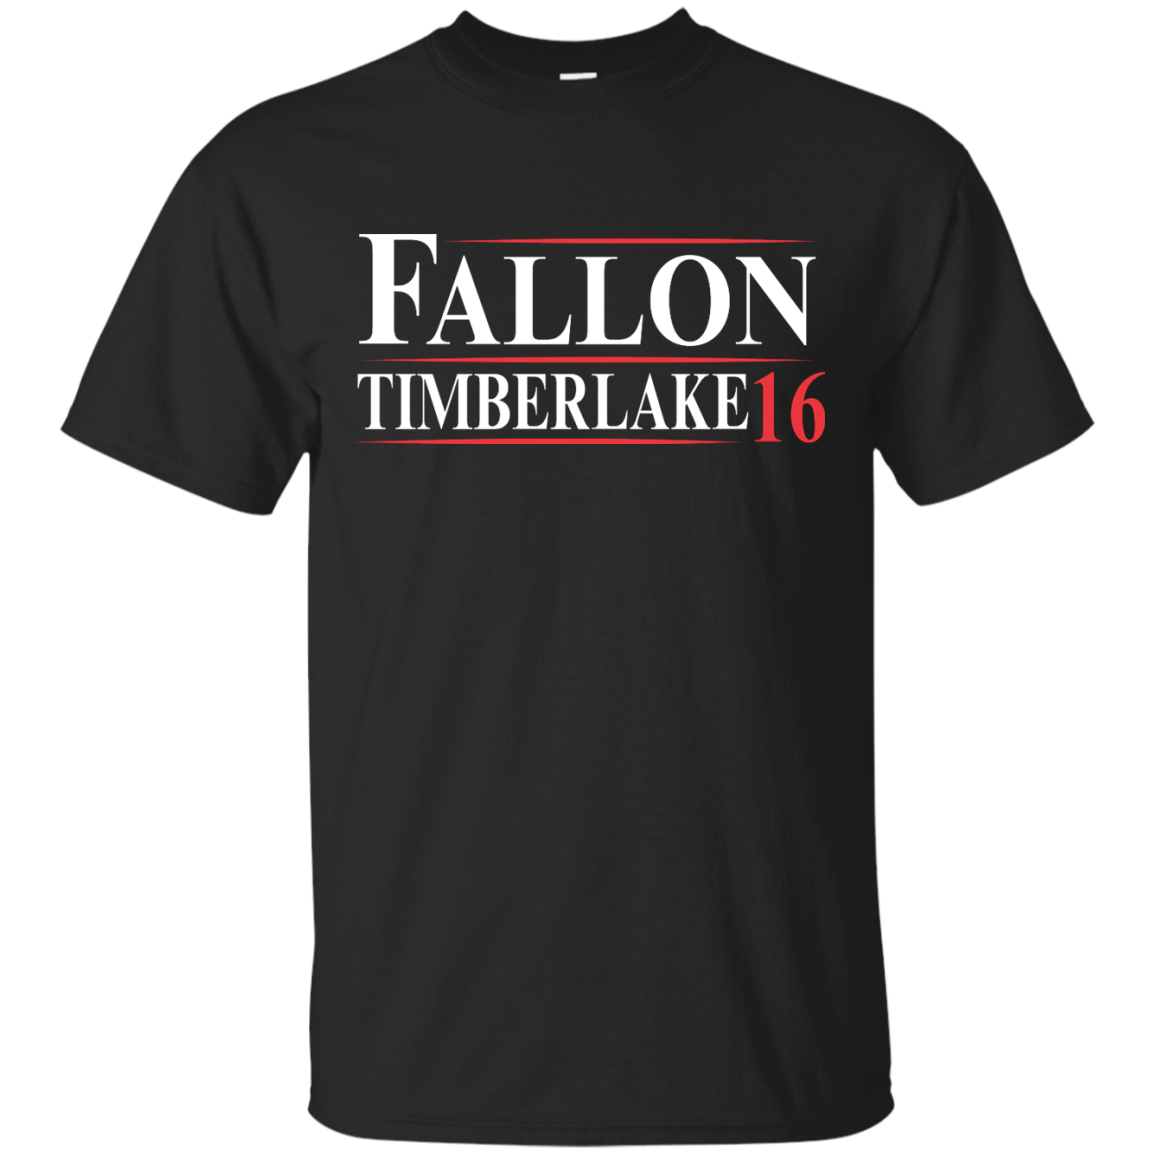 Fallon & Timberlake for President 2016 T Shirt, Hoodies, Tank Top